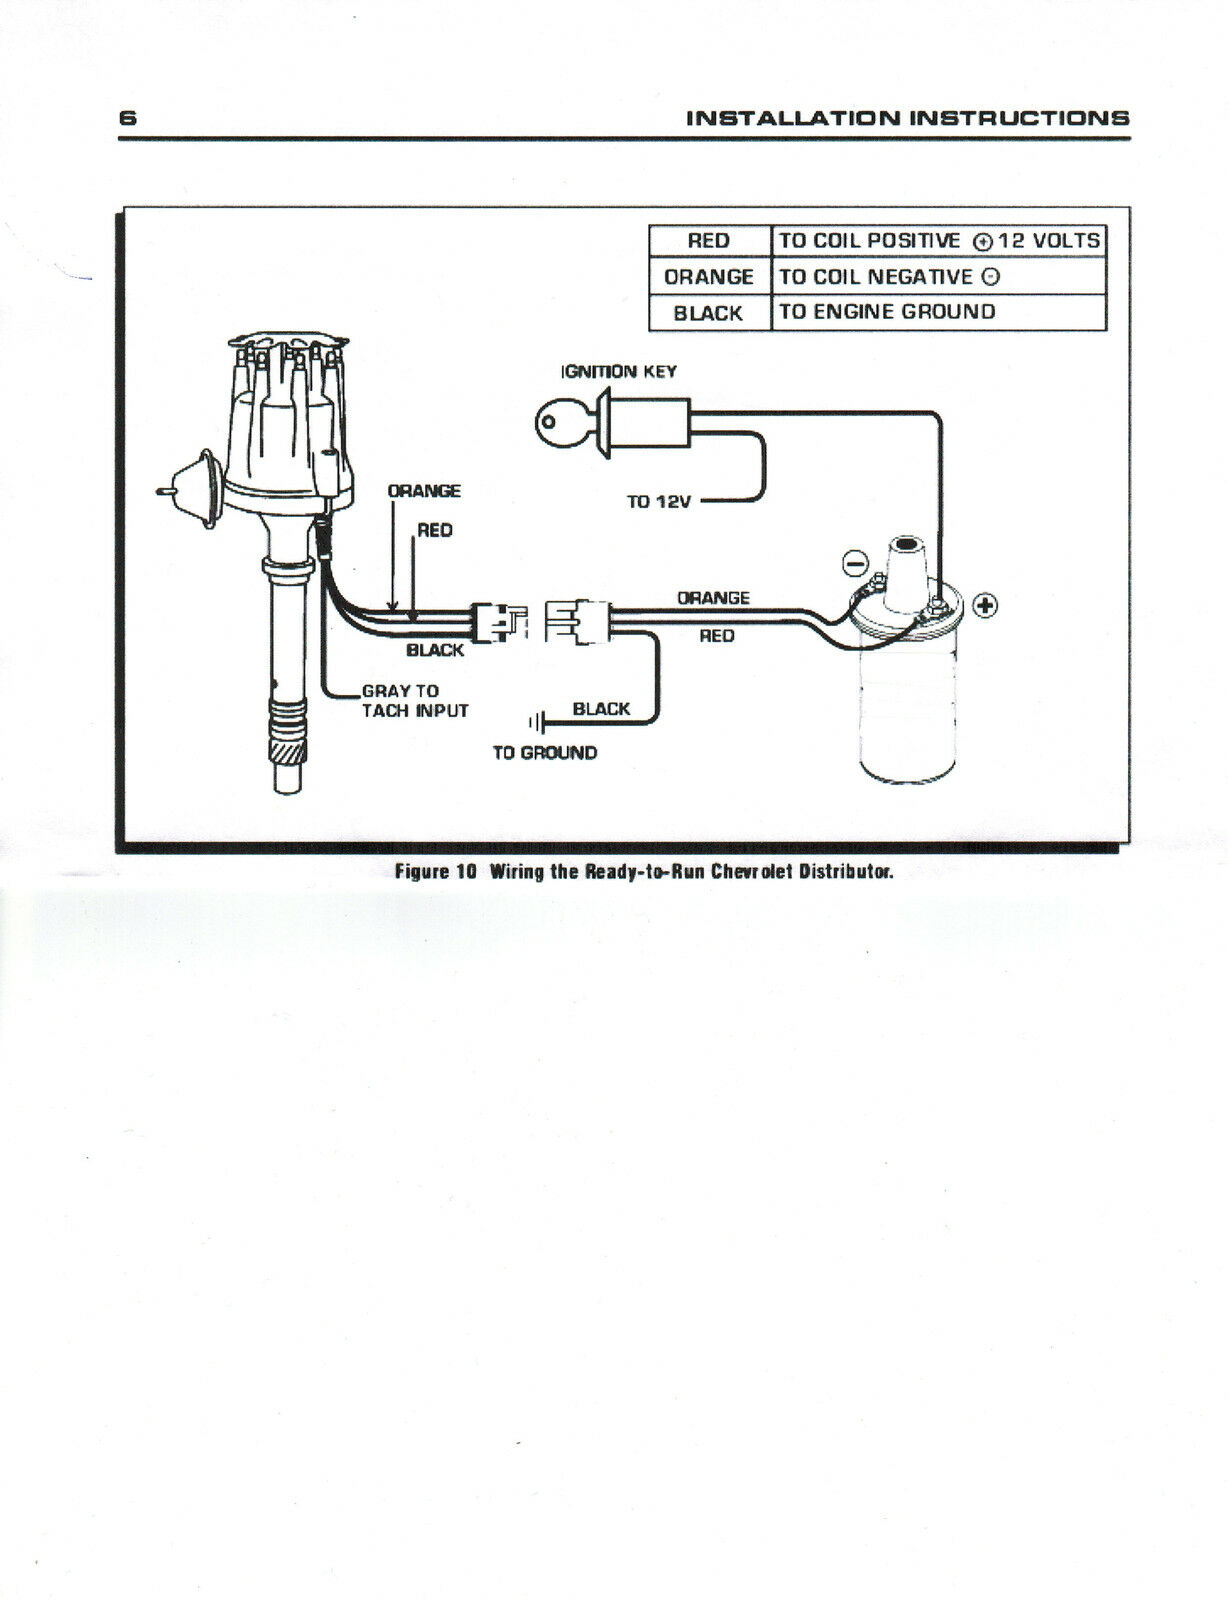 351 Cleveland Engine Wiring Diagram | Wiring Liry on hei ignition capacitor, hei ignition parts, swap hei ignition diagram, chevy distributor diagram, hei ignition troubleshooting, hei schematic, power steering wiring diagram, electric fuel pump wiring diagram, hei ignition circuit diagram, hei msd 6a wiring-diagram, hei kill switch diagram, hei coil diagram, hei ignition system, hei ignition exploded view, hei vacuum advance diagram, hei plug diagram, hei conversion wiring, pertronix distributor wiring diagram,